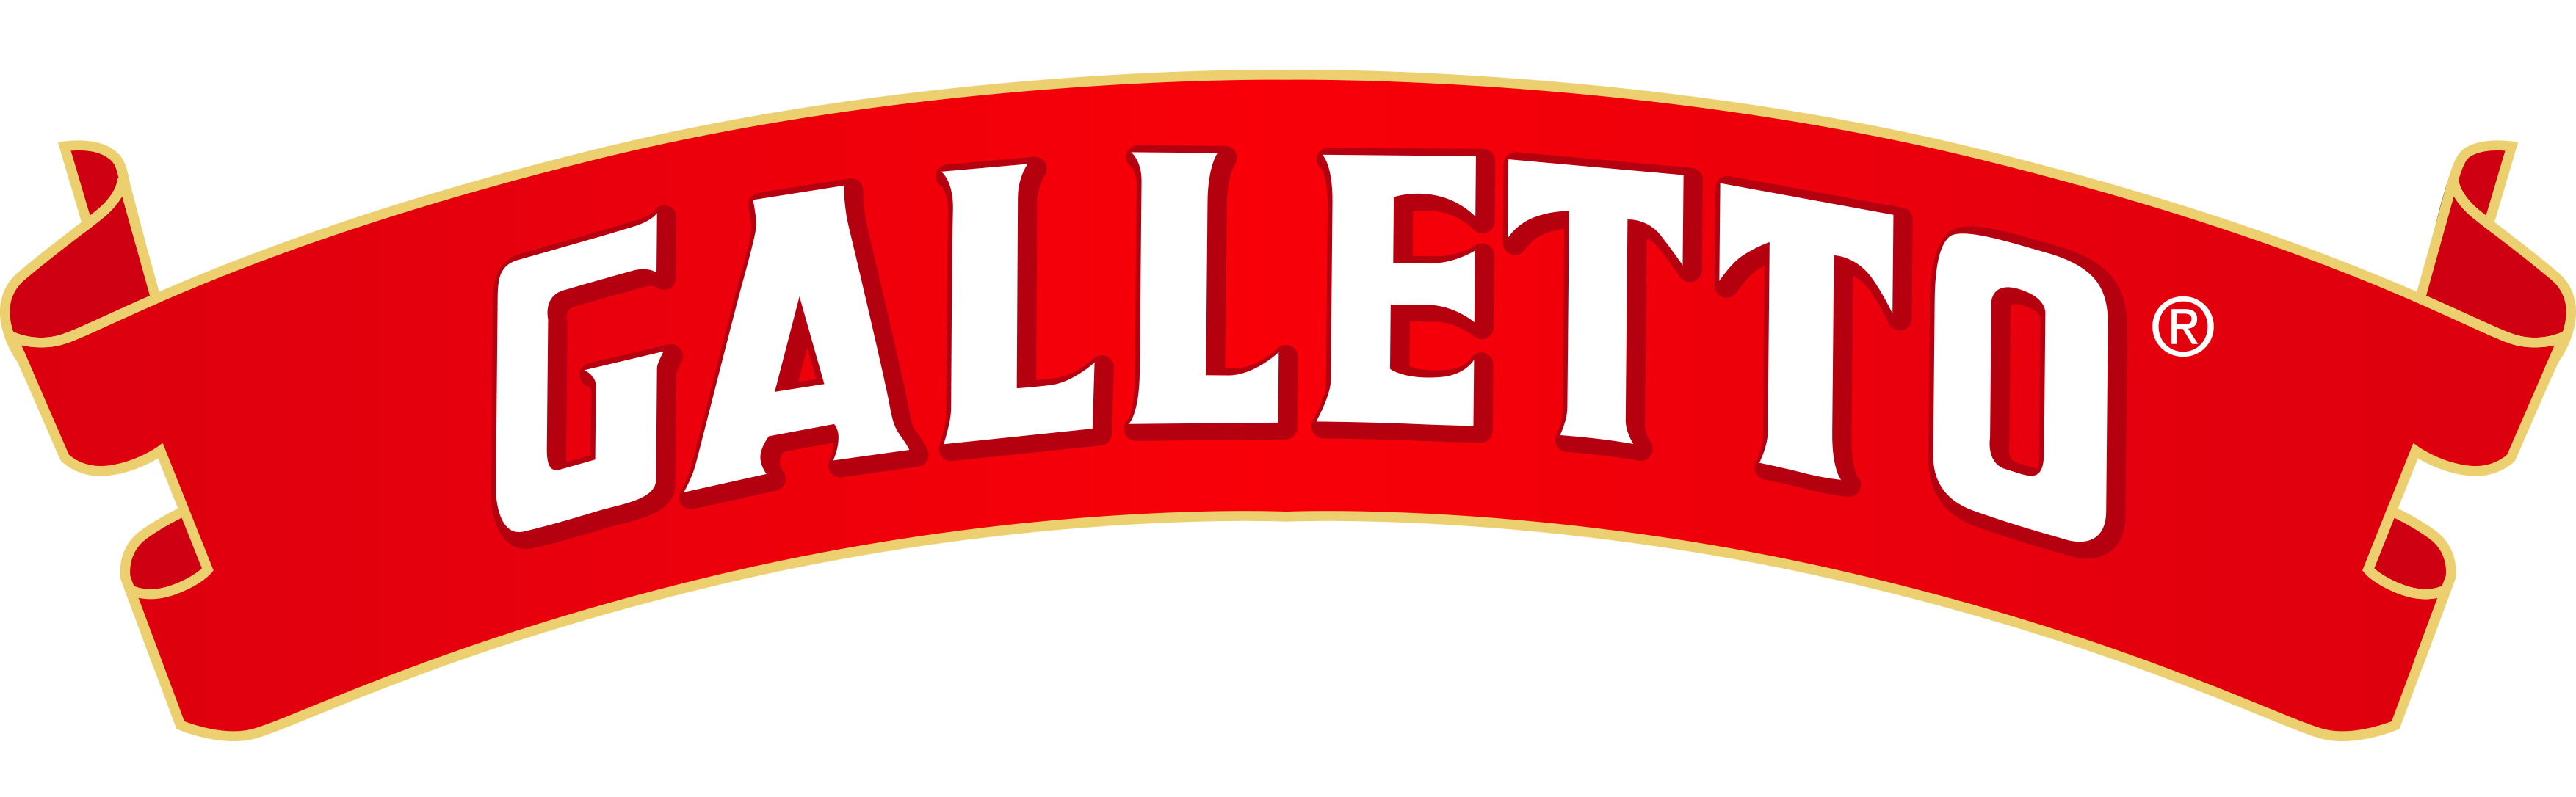 logo_galletto